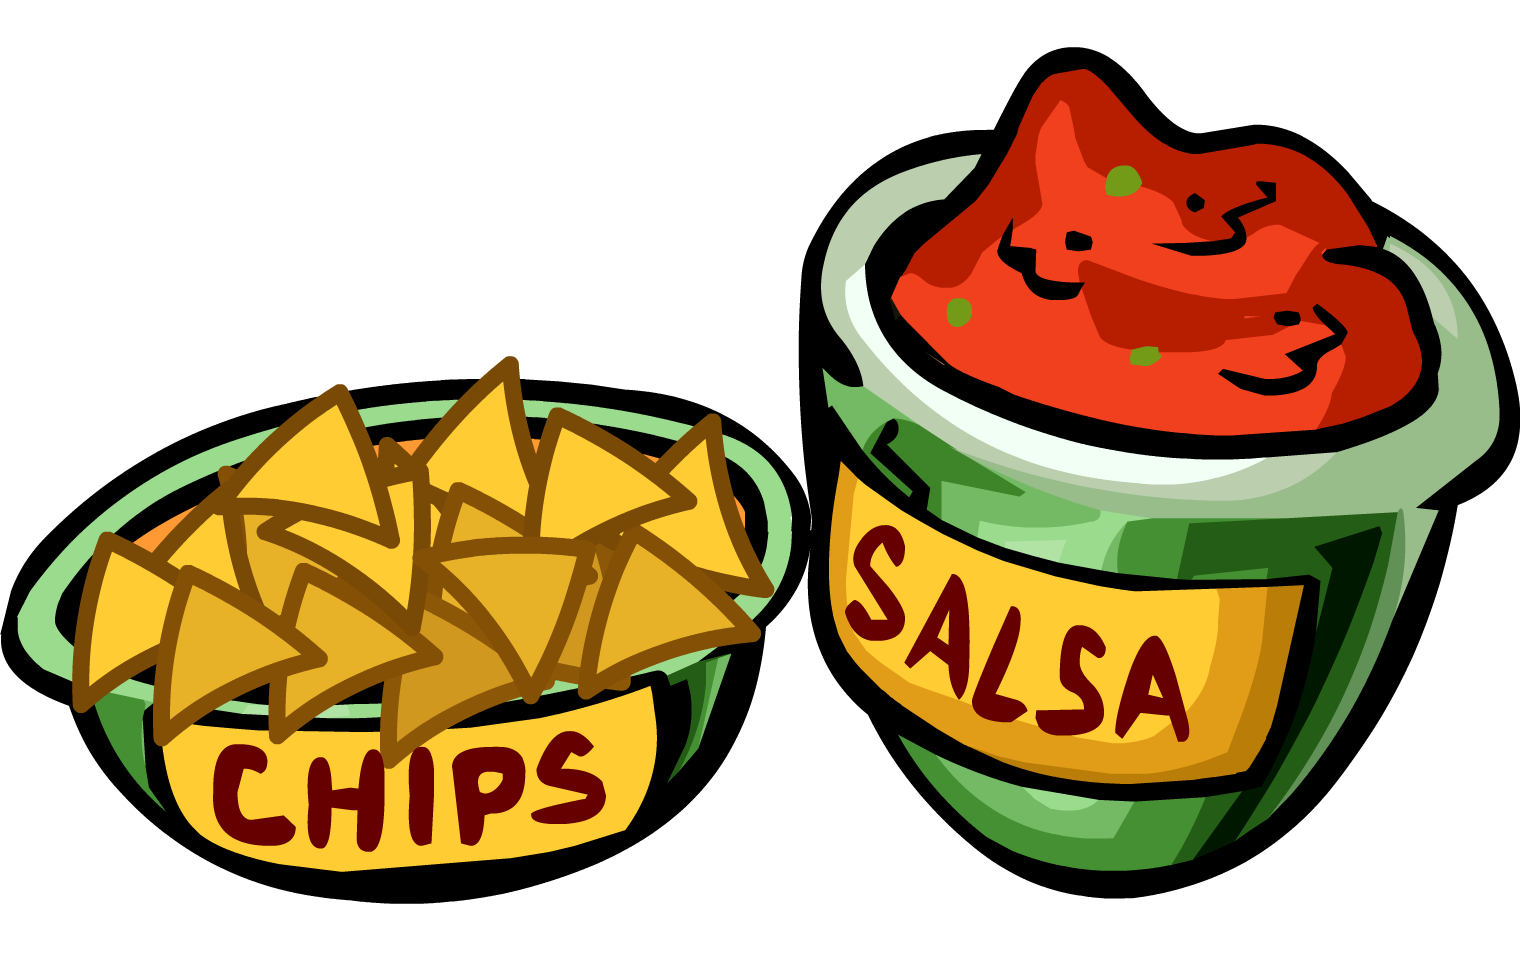 Image salsa and chips. Movie clipart nacho